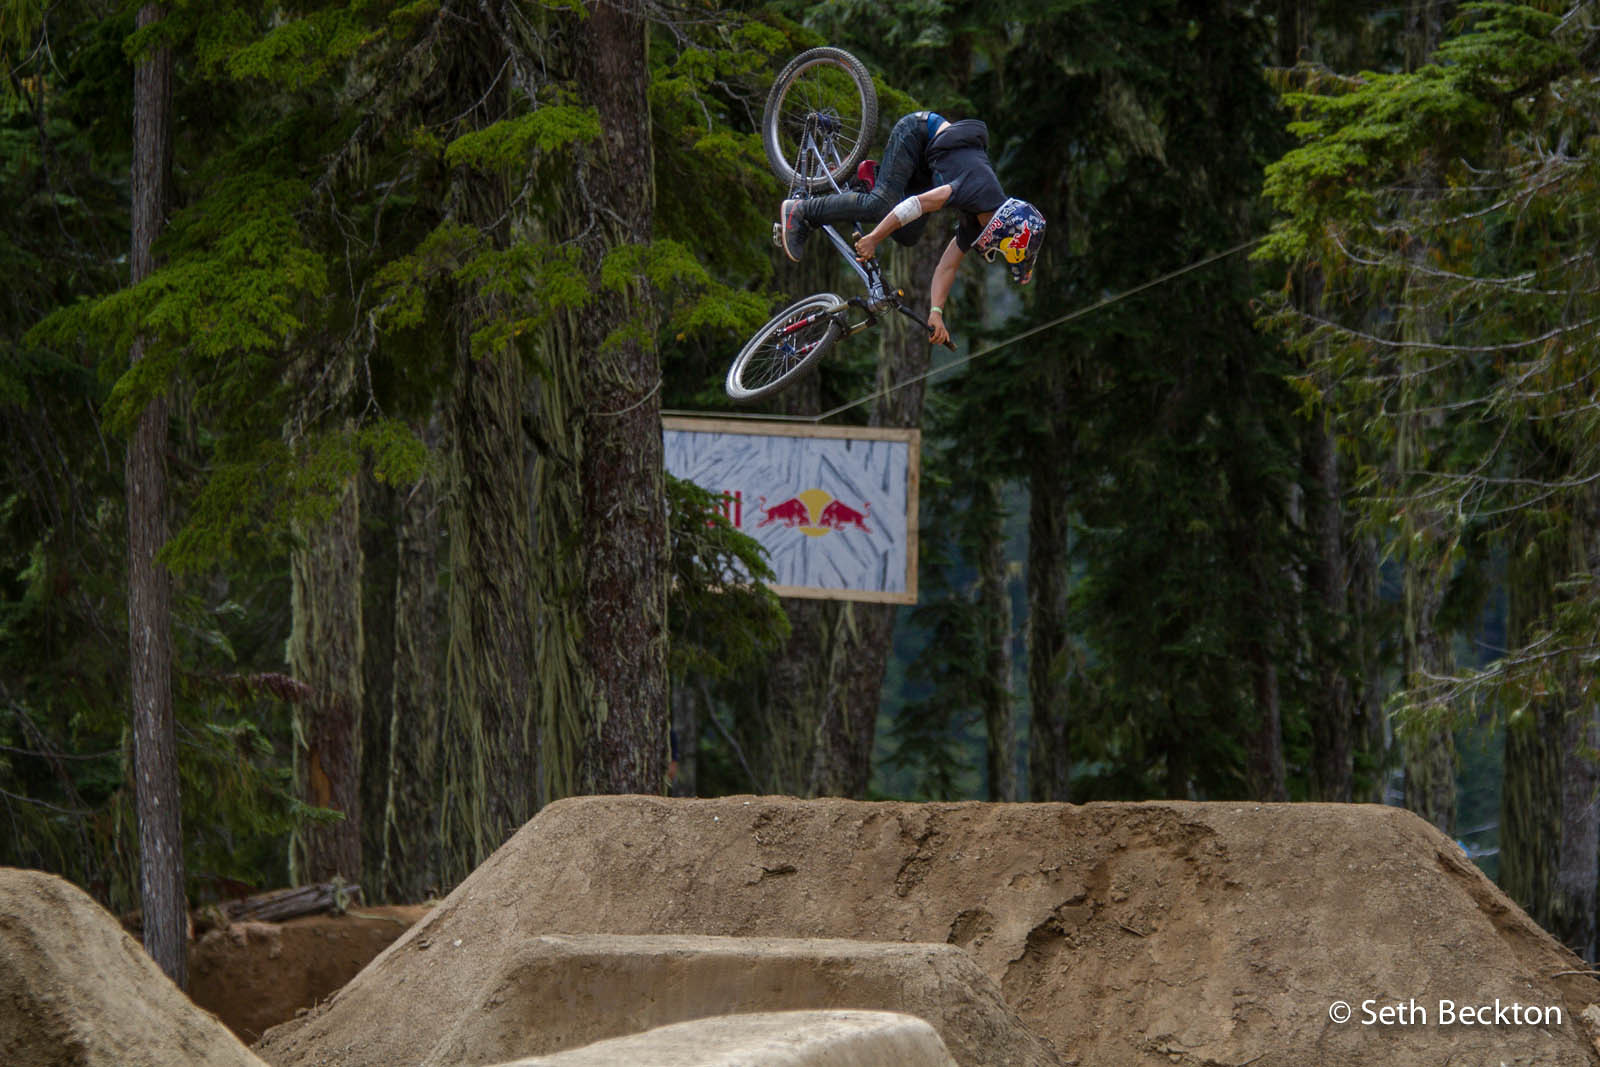 Anthony Messere Massive Flair Video from Bearclaw Invitational - Seth_Beckton - Mountain Biking Pictures - Vital MTB